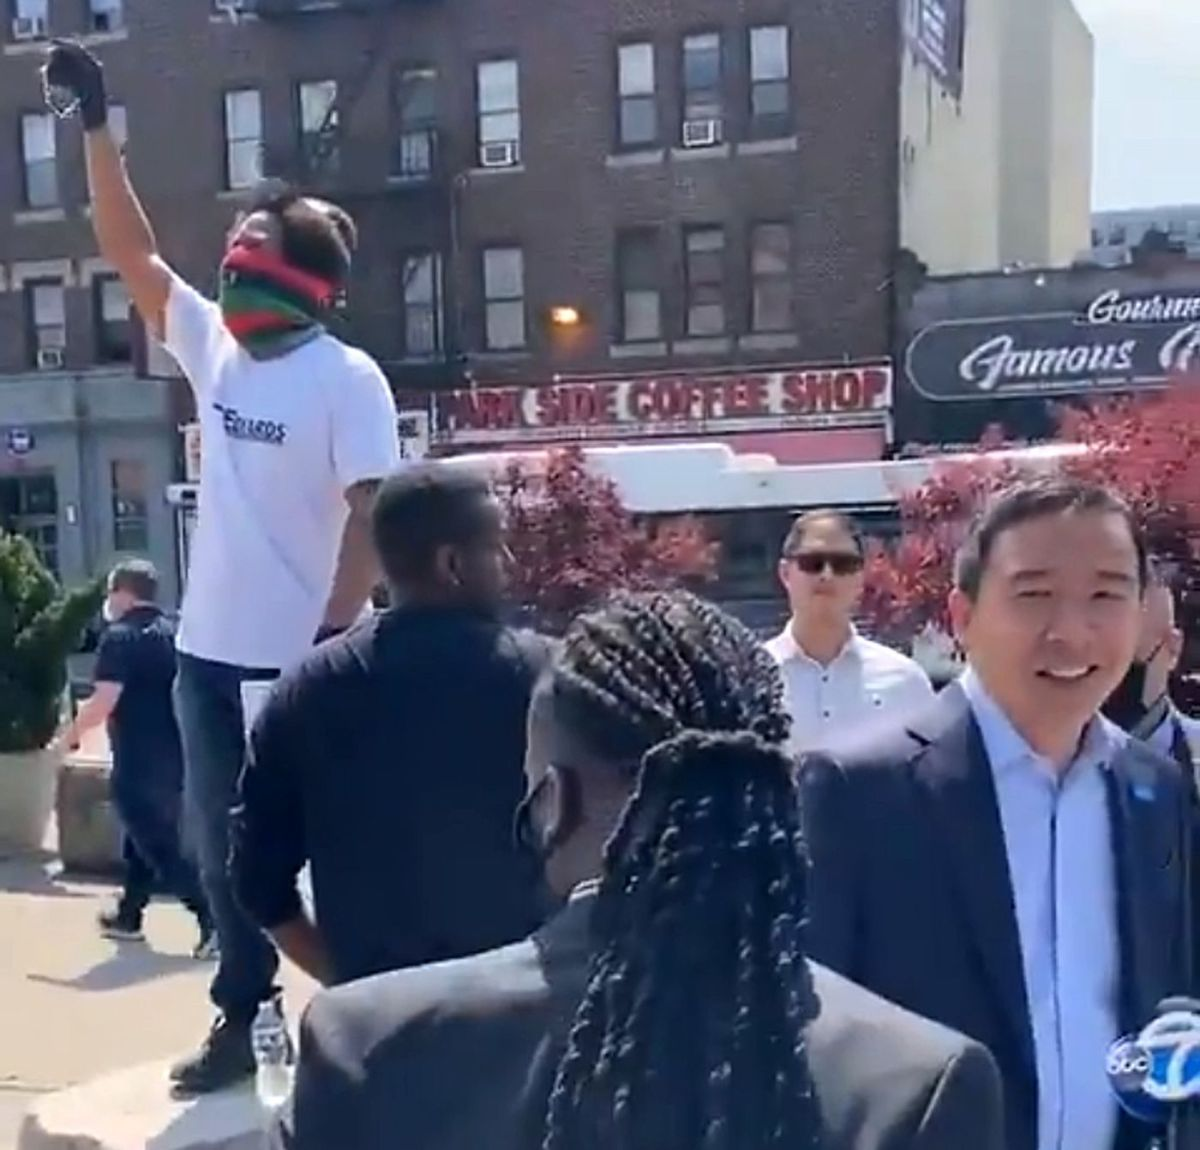 Mayoral candidate Andrew Yang, pitching NYC police reform plan, is heckled in Brooklyn